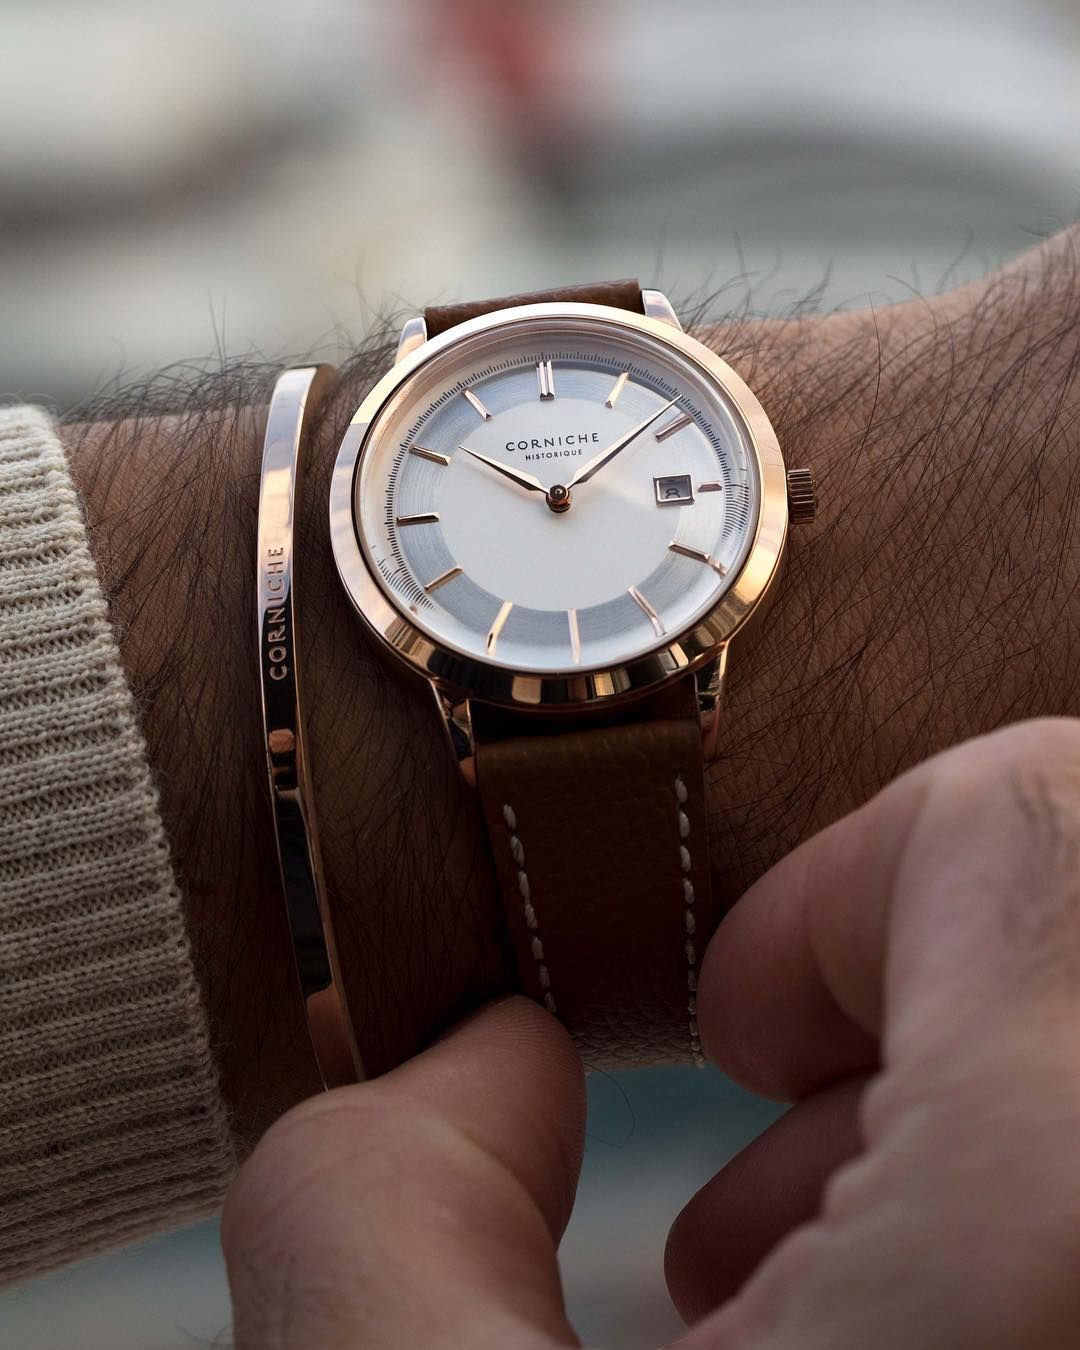 Corniche watches official on instagram ucthe rose gold historique